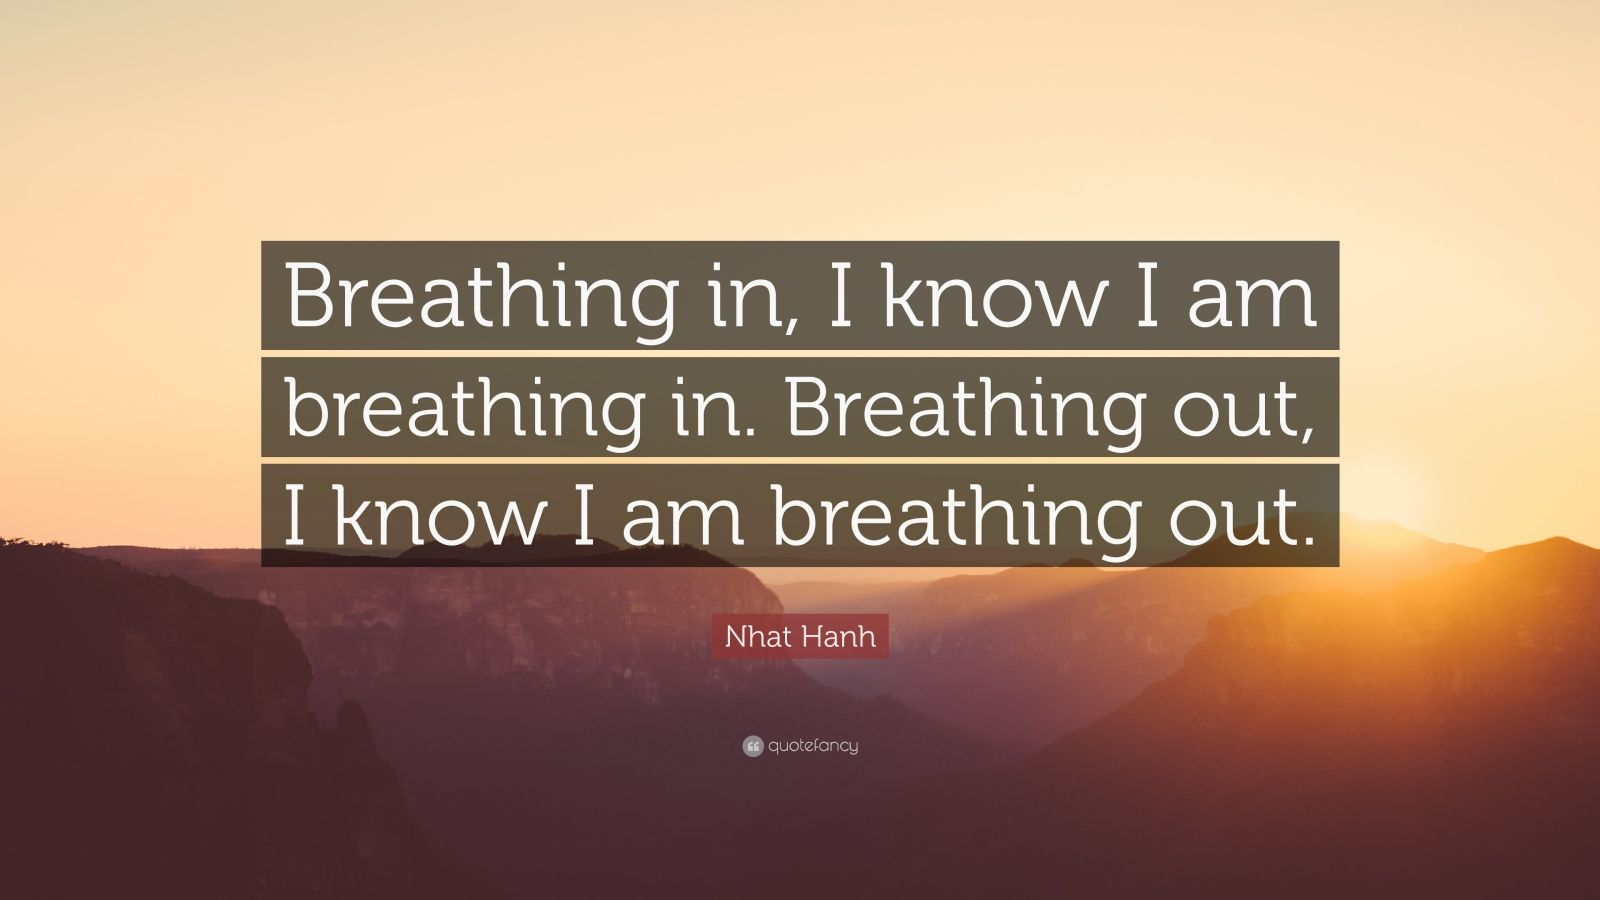 """Nhat Hanh Quote: """"Breathing in, I know I am breathing in. Breathing out, I know I am breathing out."""""""